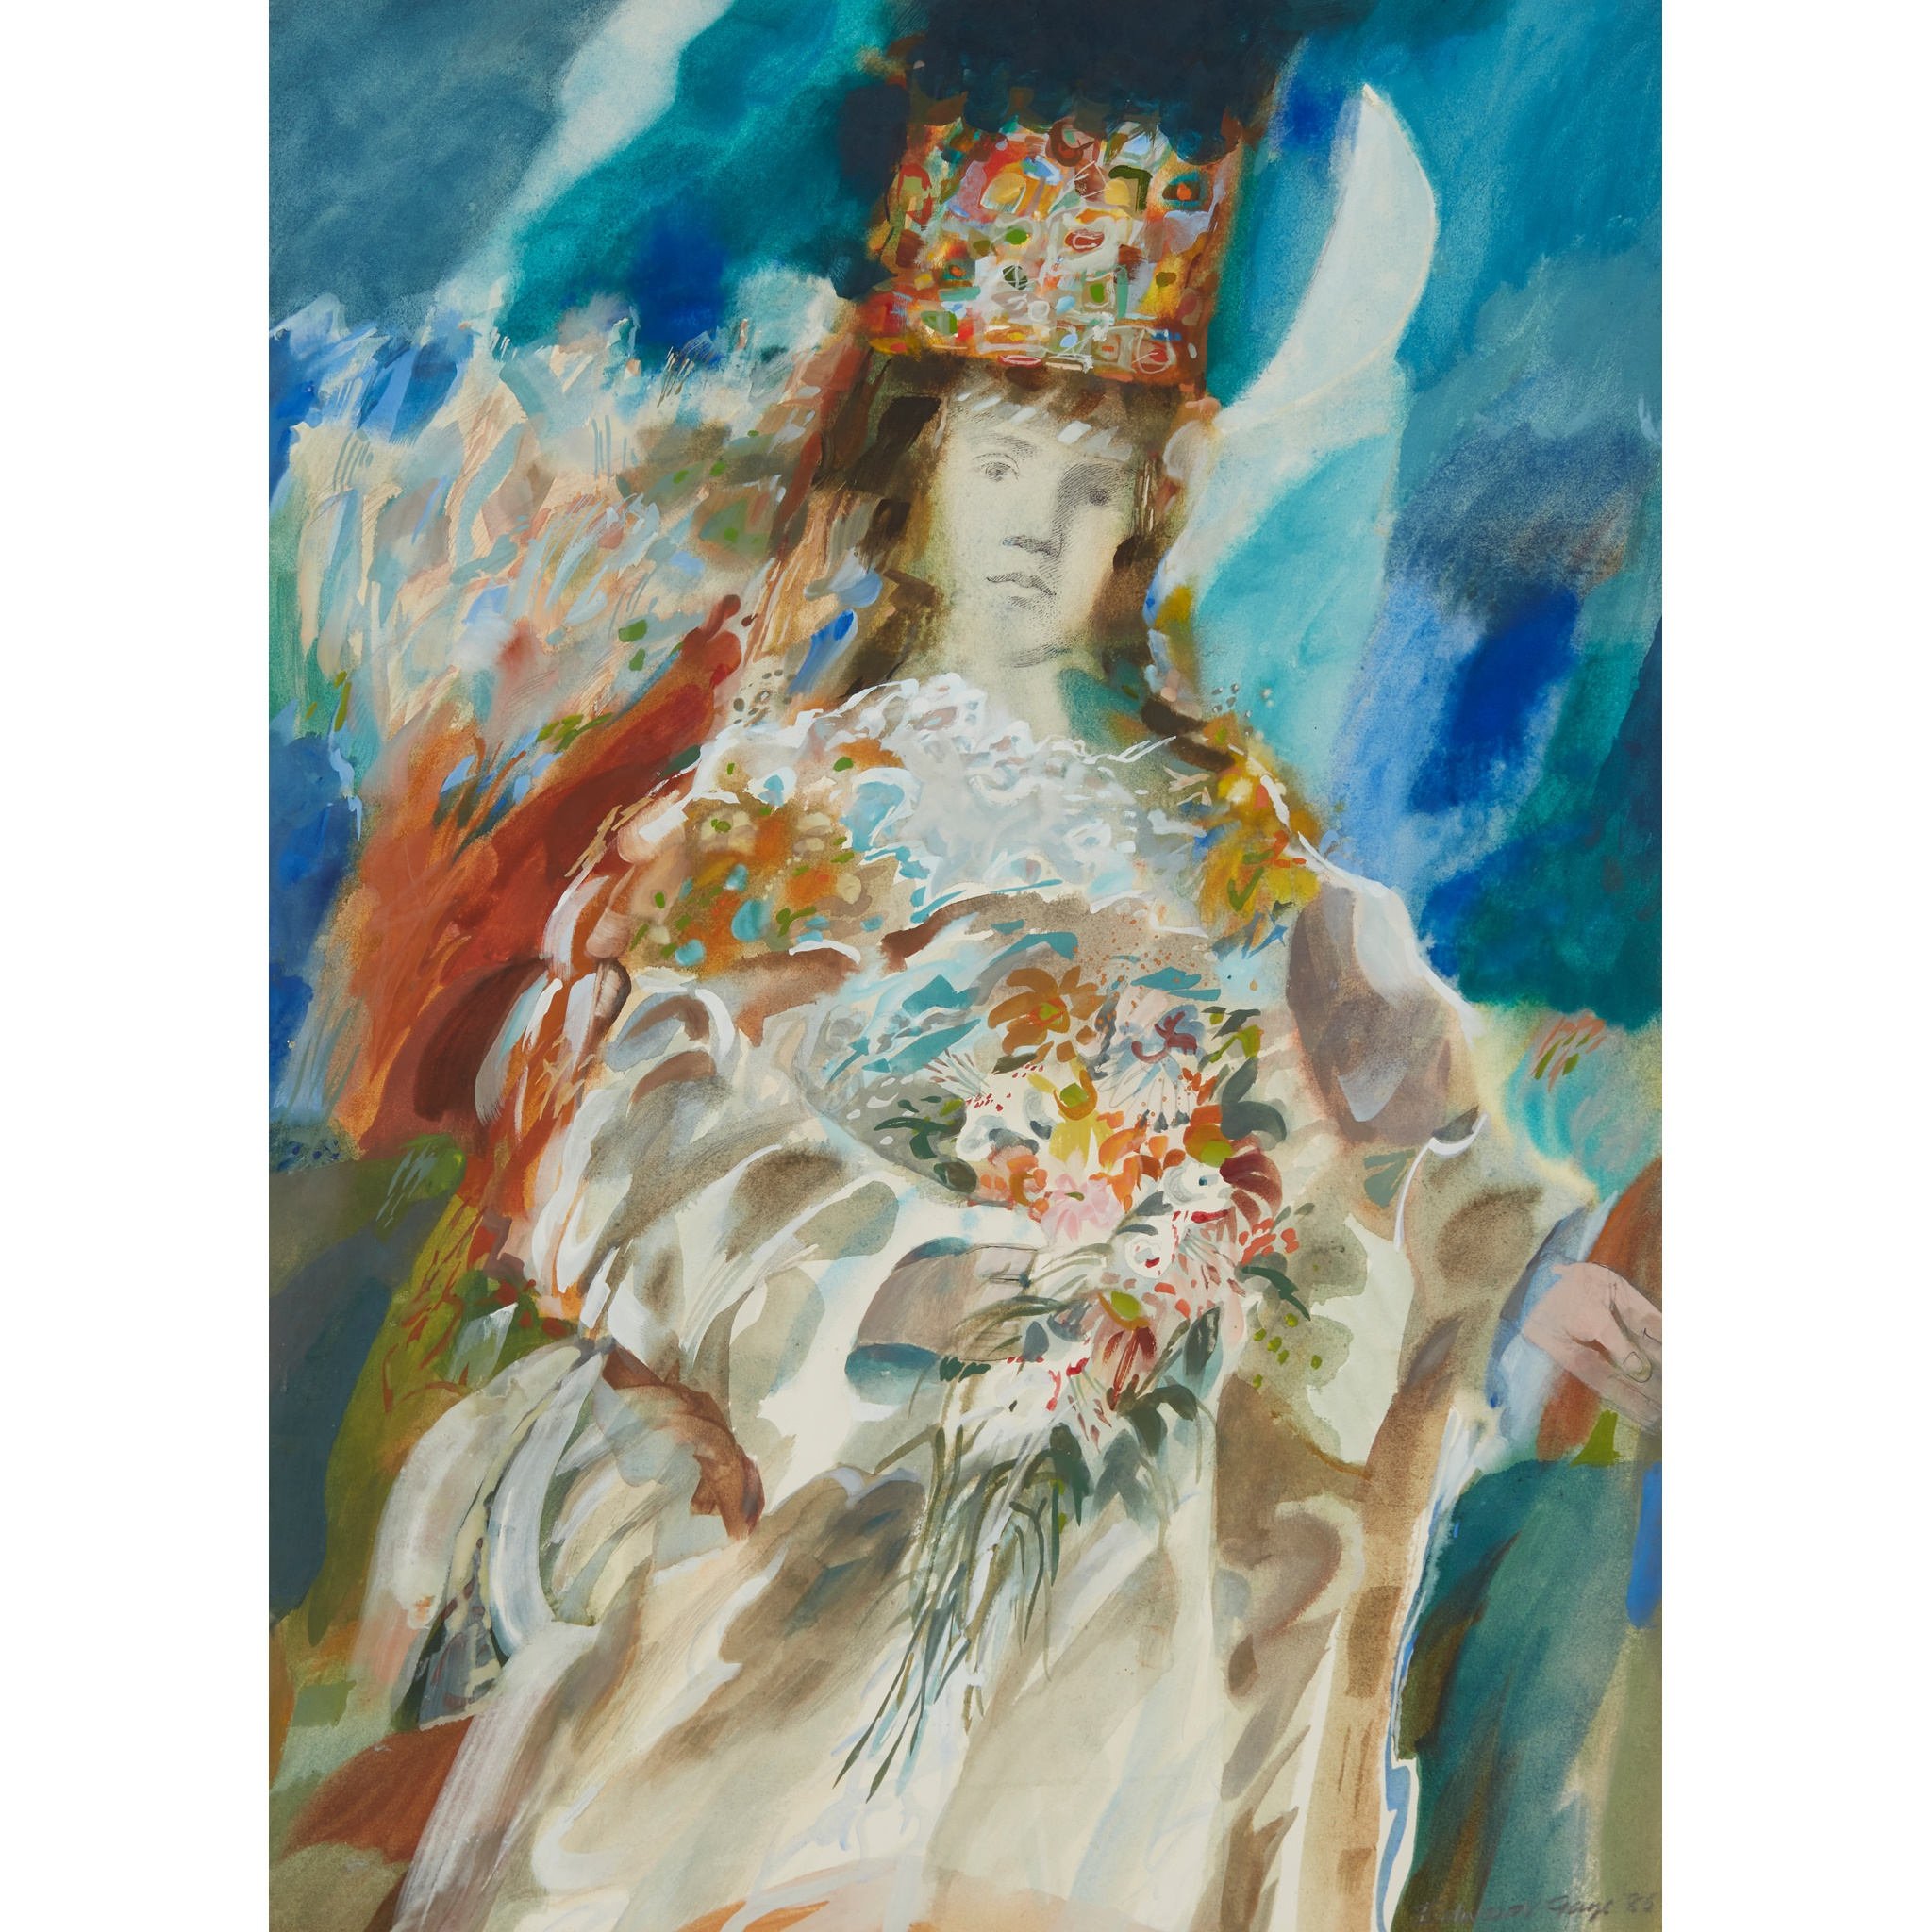 § EDWARD GAGE R.S.W. (SCOTTISH 1925-2000) MASQUE, GUINEVERE AS FLORA, 1986